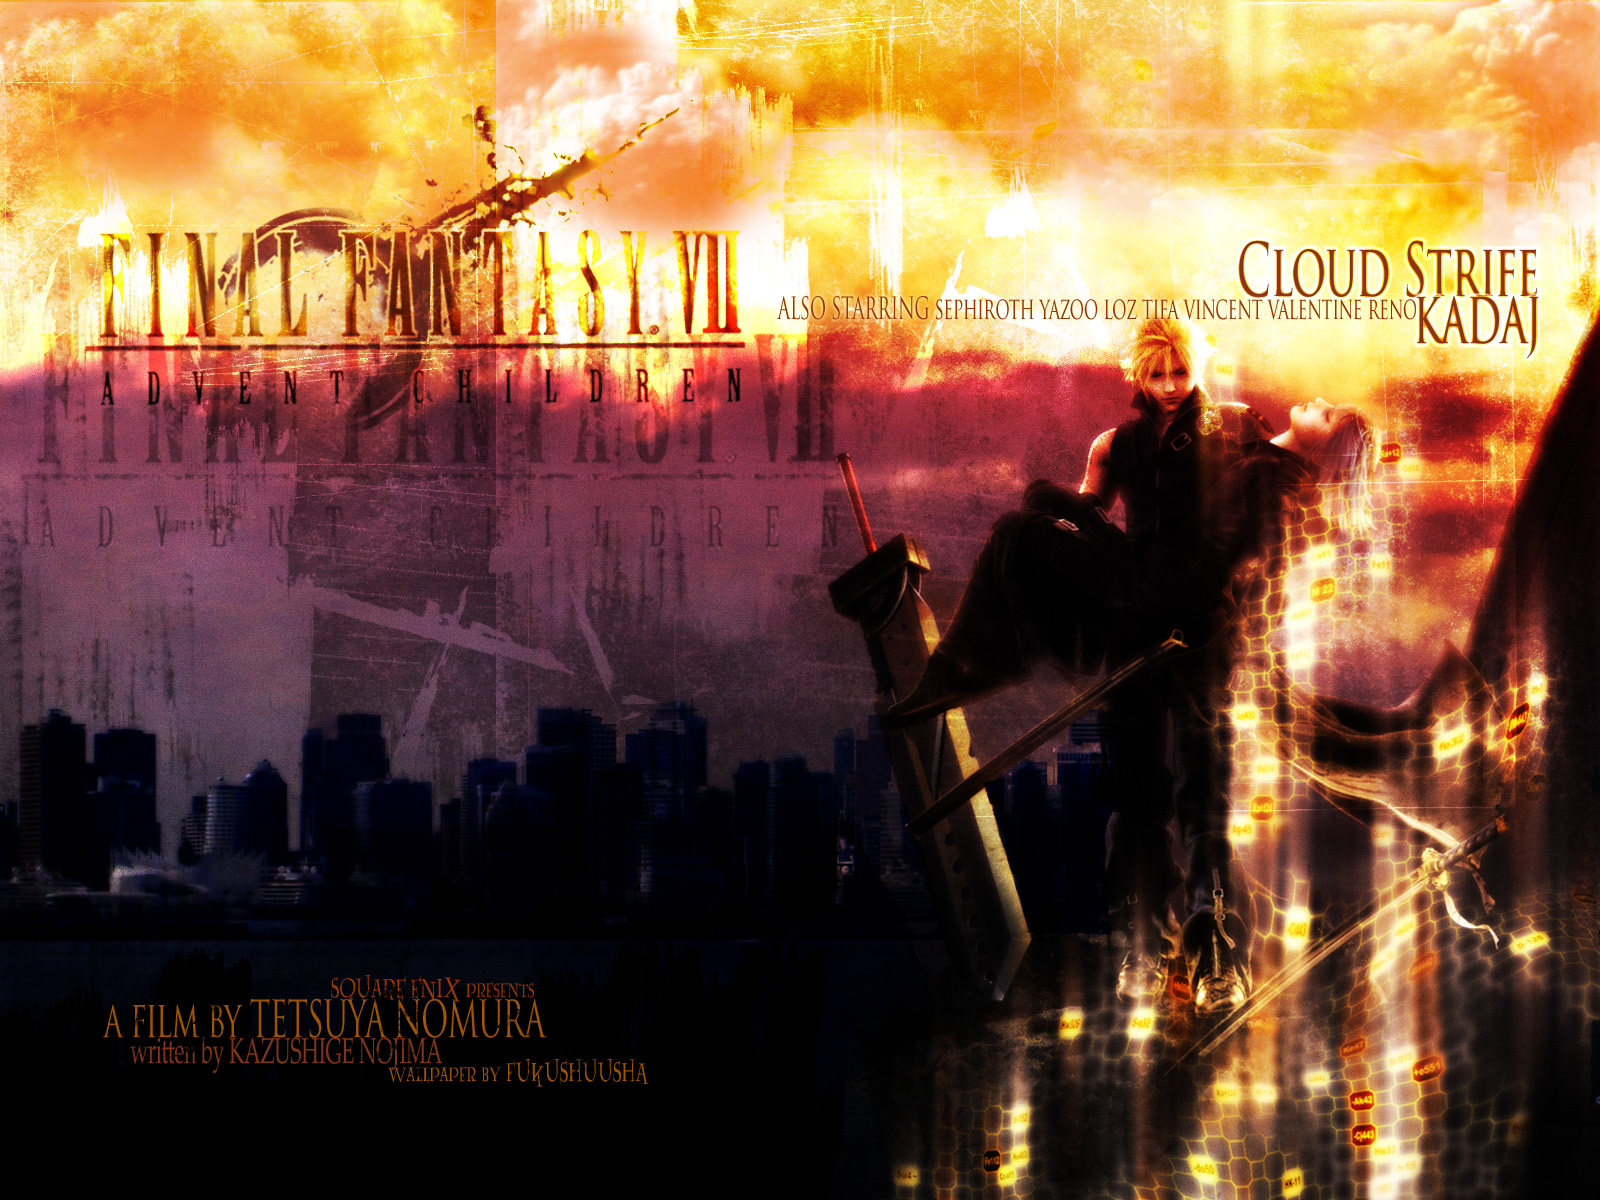 http://3.bp.blogspot.com/-haXdWIUyXTk/TgUxamFirmI/AAAAAAAAAAU/XnbAd2W2fXg/s1600/Cloud+Strife+and+Kadaj+FF+VII+Wallpaper.jpg